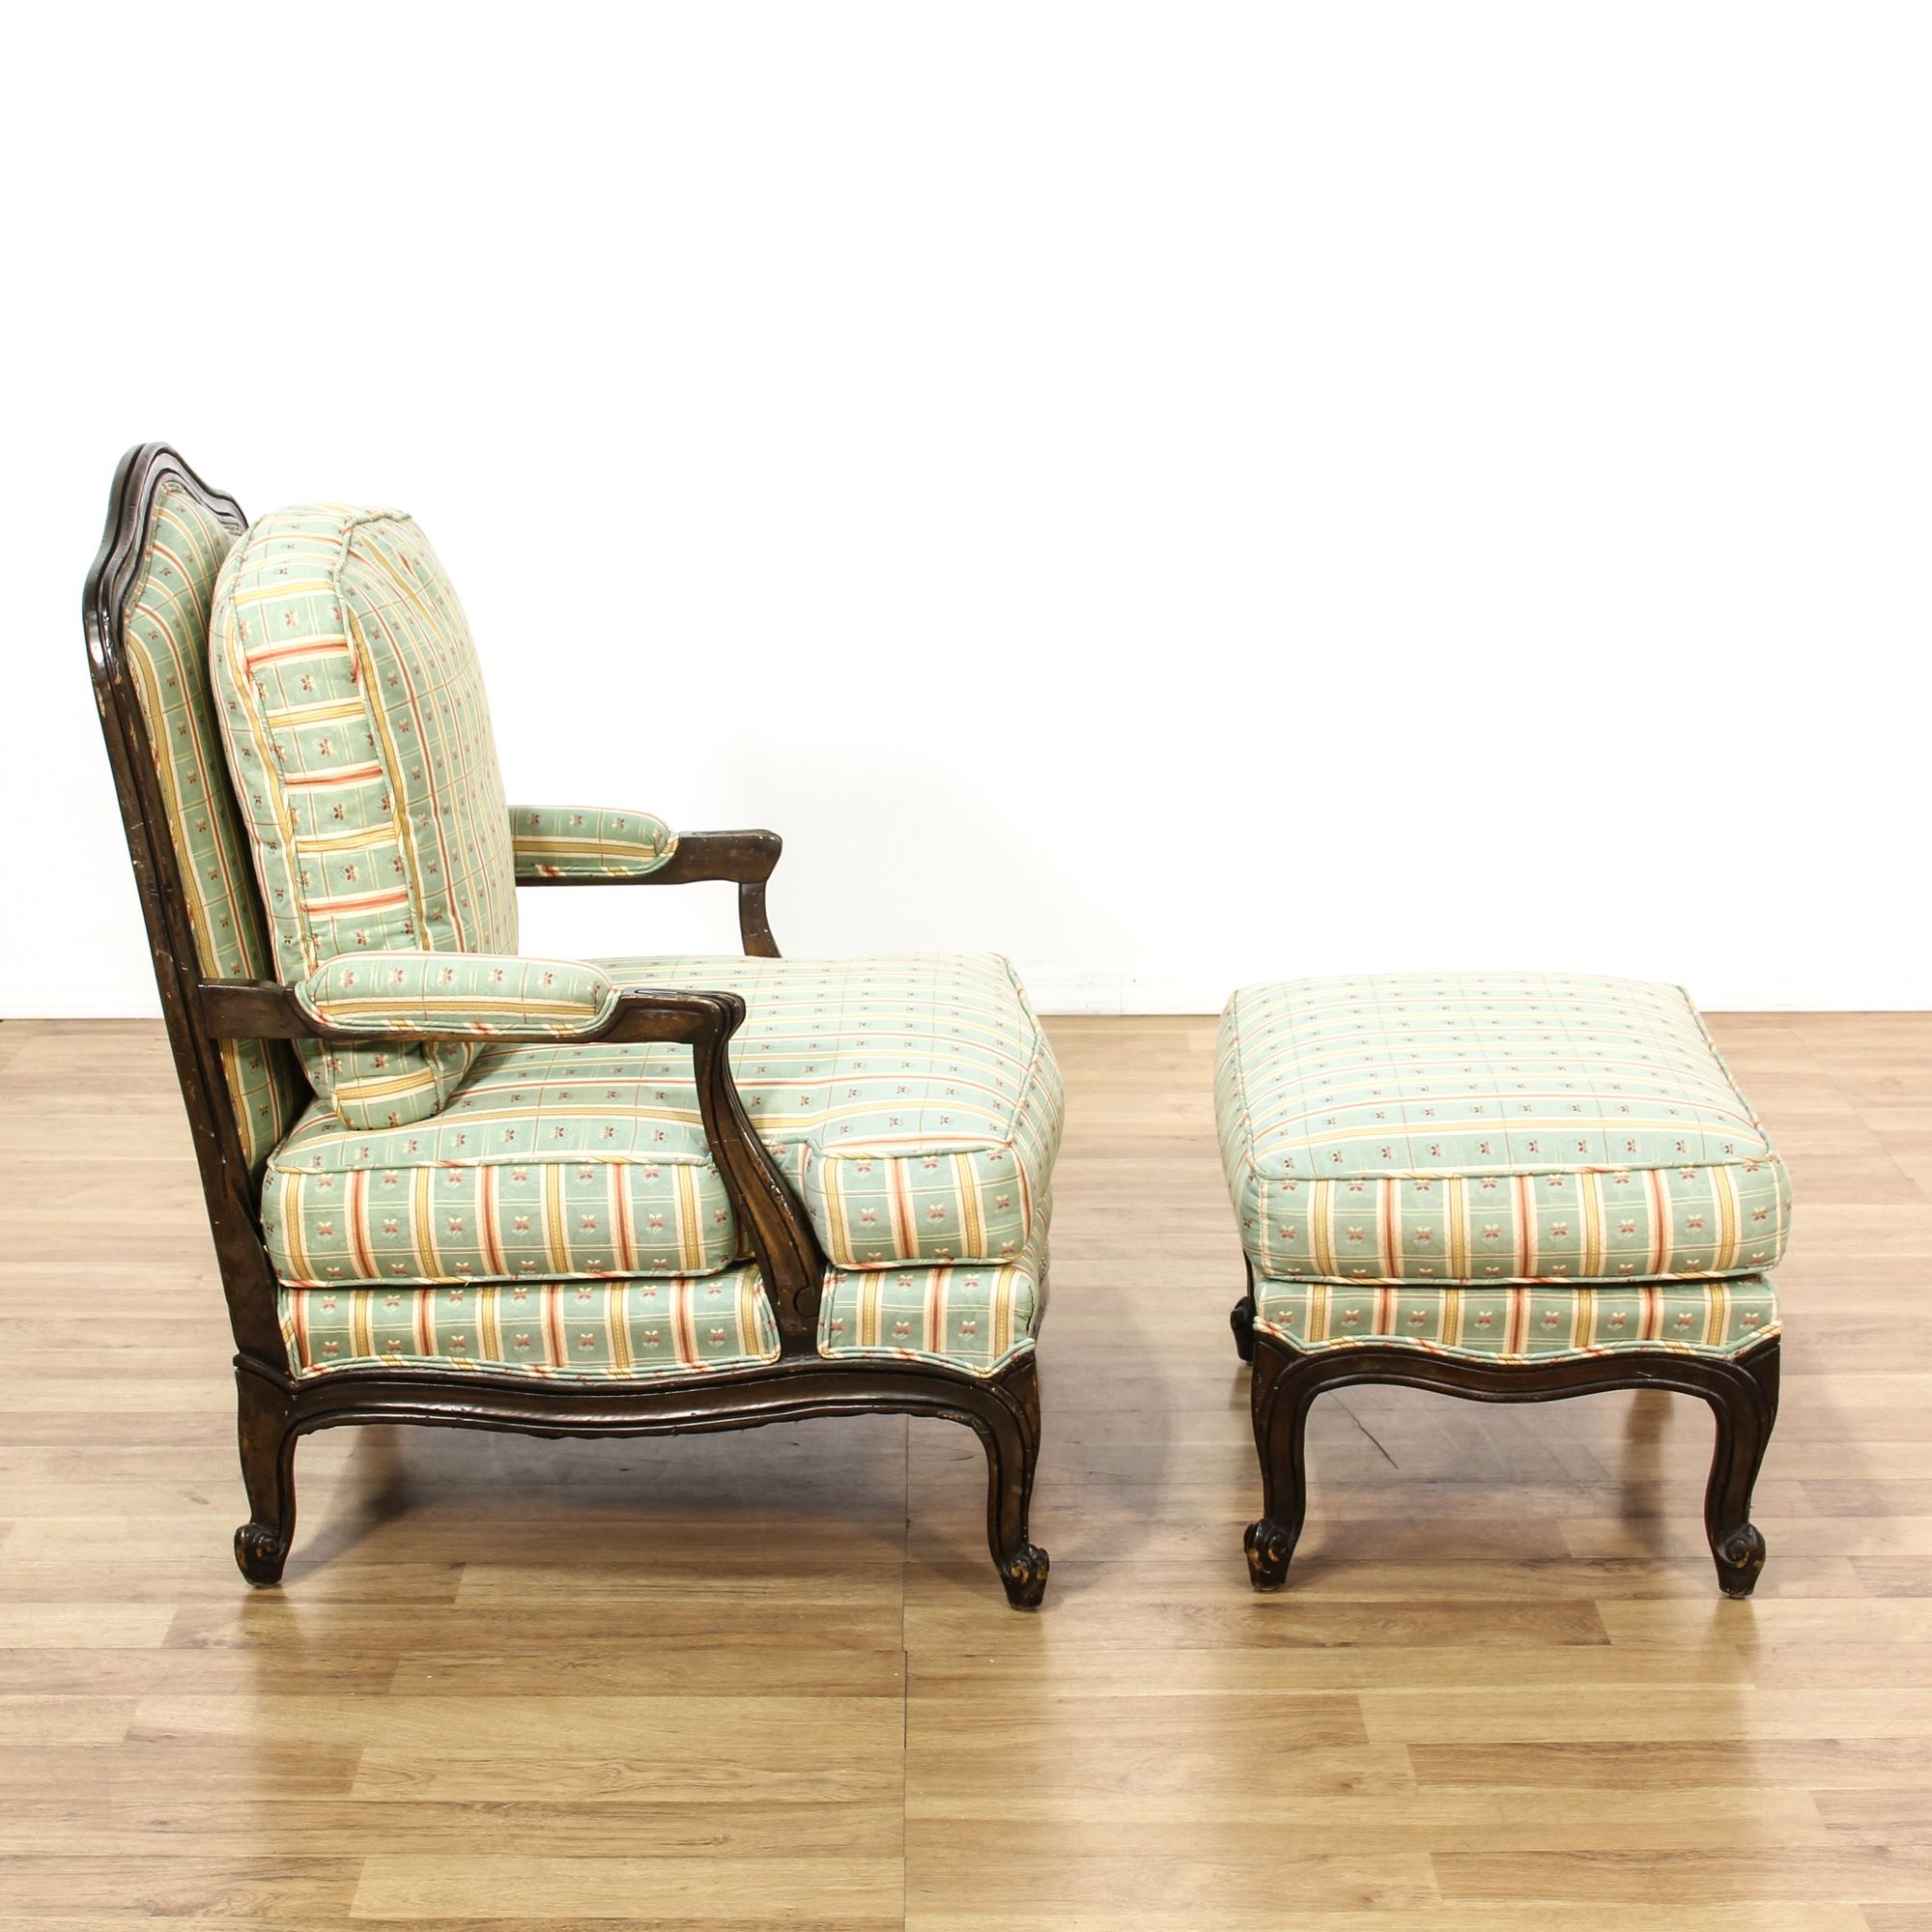 Chair Cushions 19 X 19 picture on green upholstered armchair ottoman with Chair Cushions 19 X 19, sofa 6035ba3e25a2542367fefd6c6945ac9d